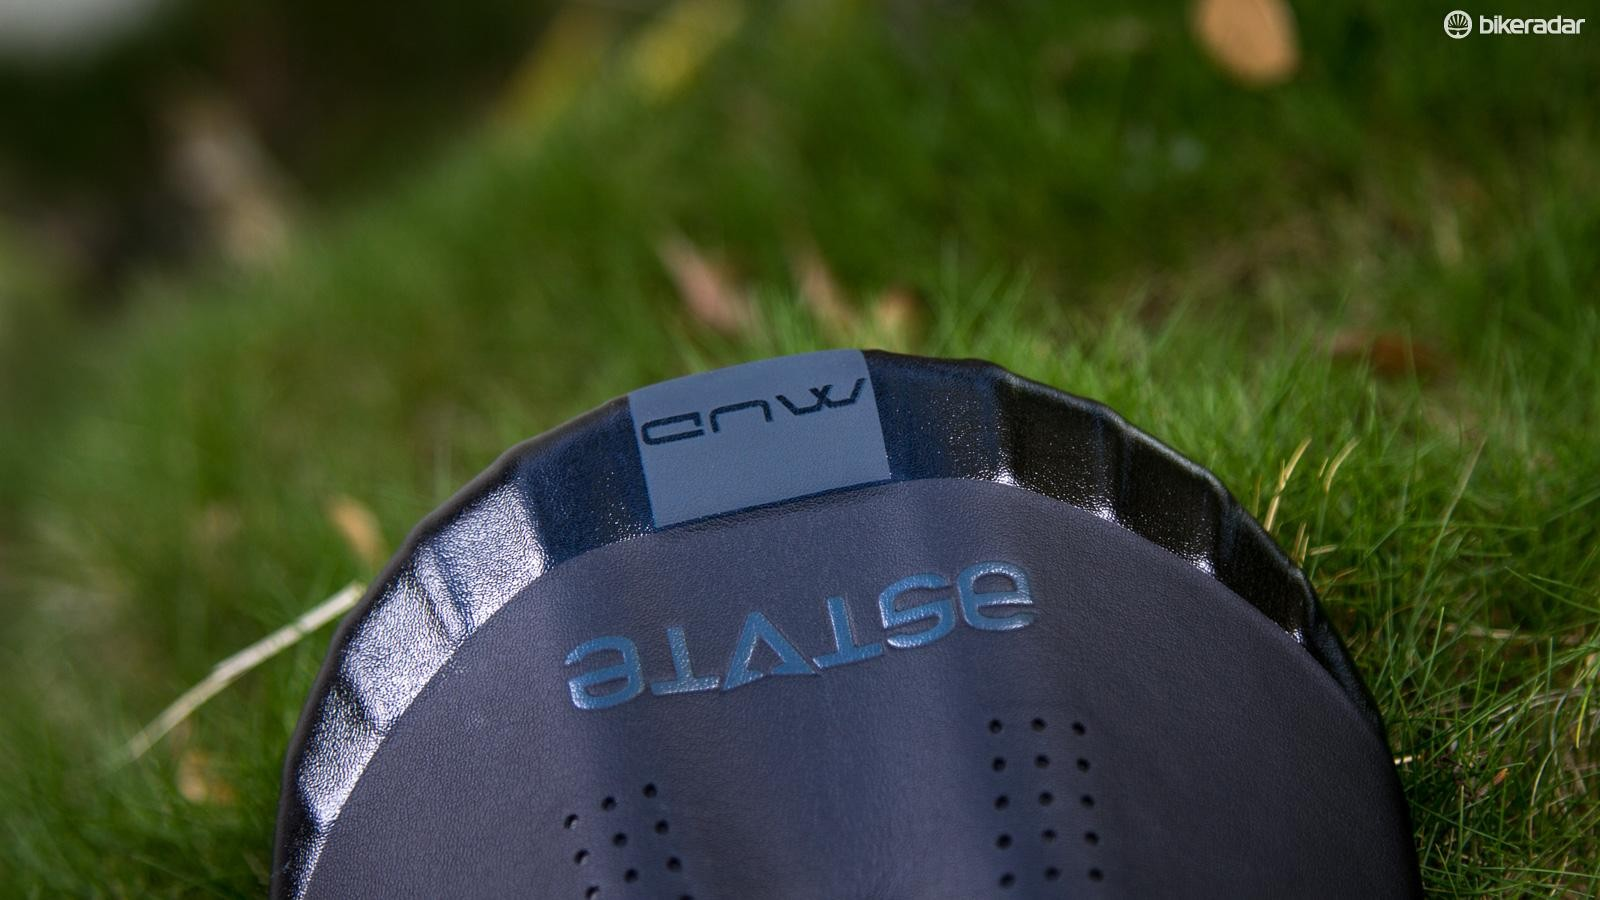 The Bumper D-system adds some toughness around the edge of the saddle